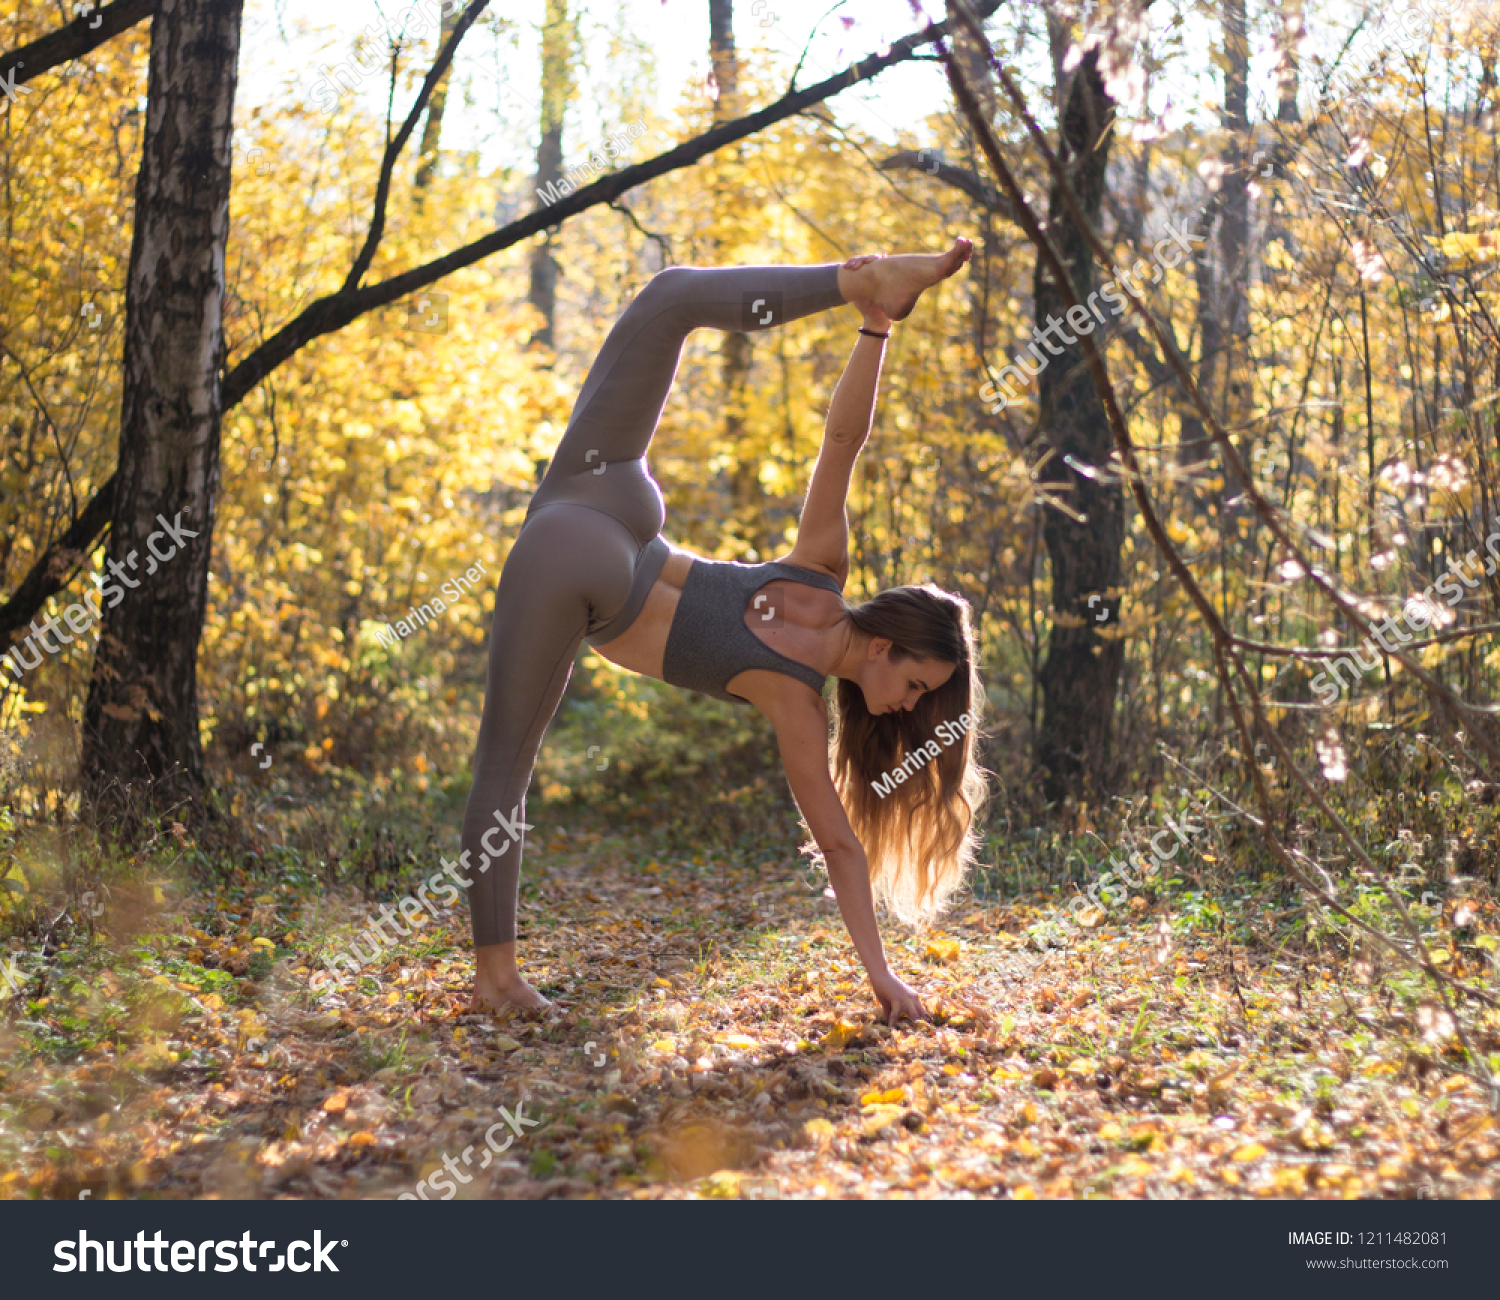 https://image.shutterstock.com/z/stock-photo-girl-doing-stretching-in-the-forest-1211482081.jpg